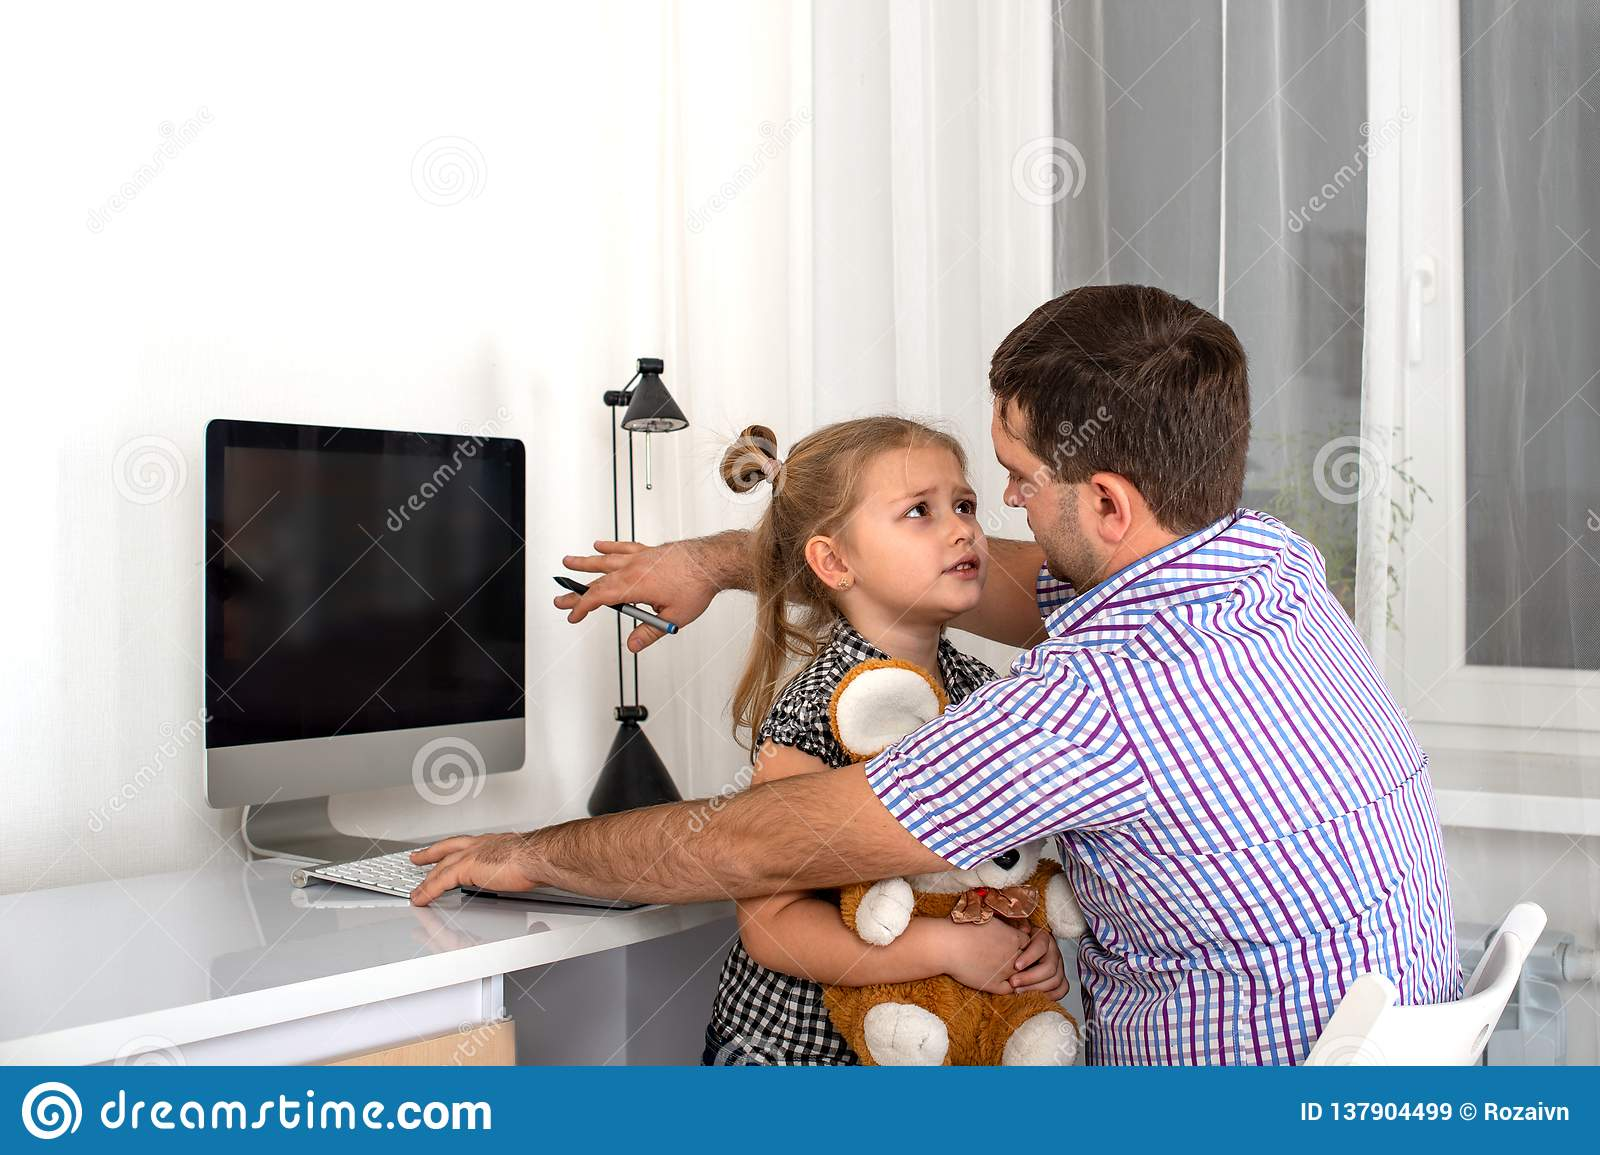 Studio emotional shot of a young girl asking a busy person computer dad give her attention and play with her